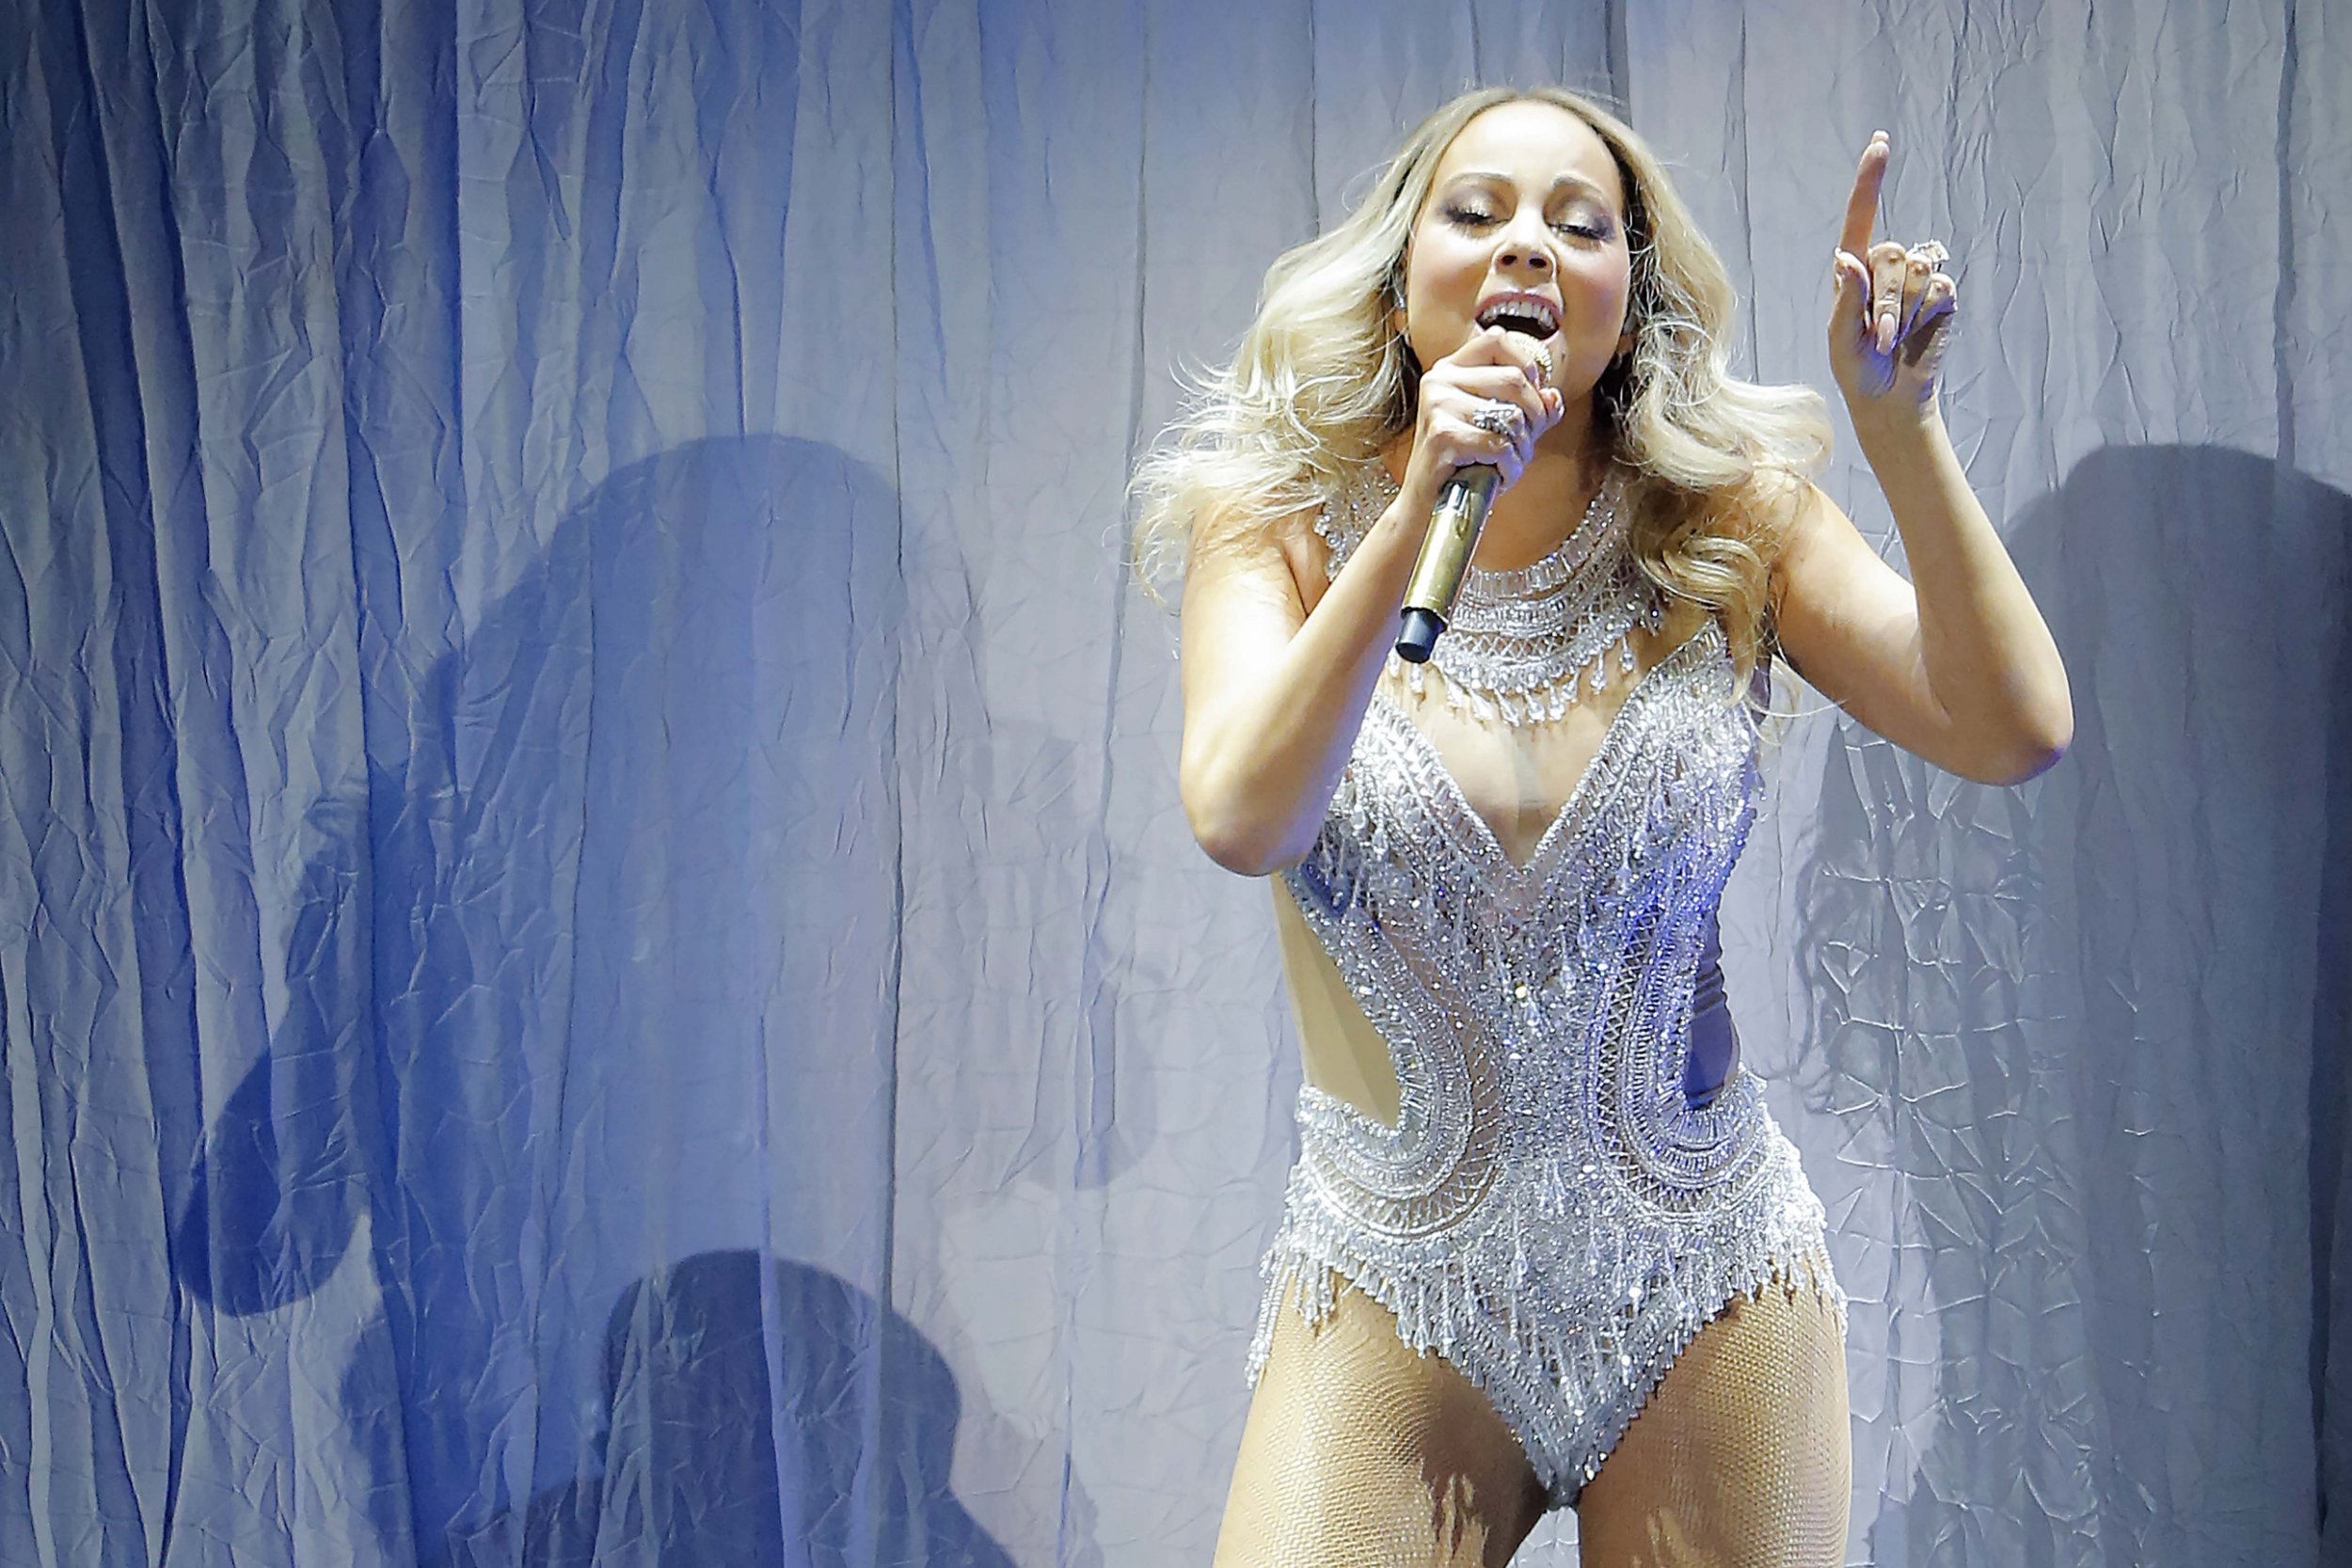 Mariah Carey halts Amsterdam gig to complain about the fans